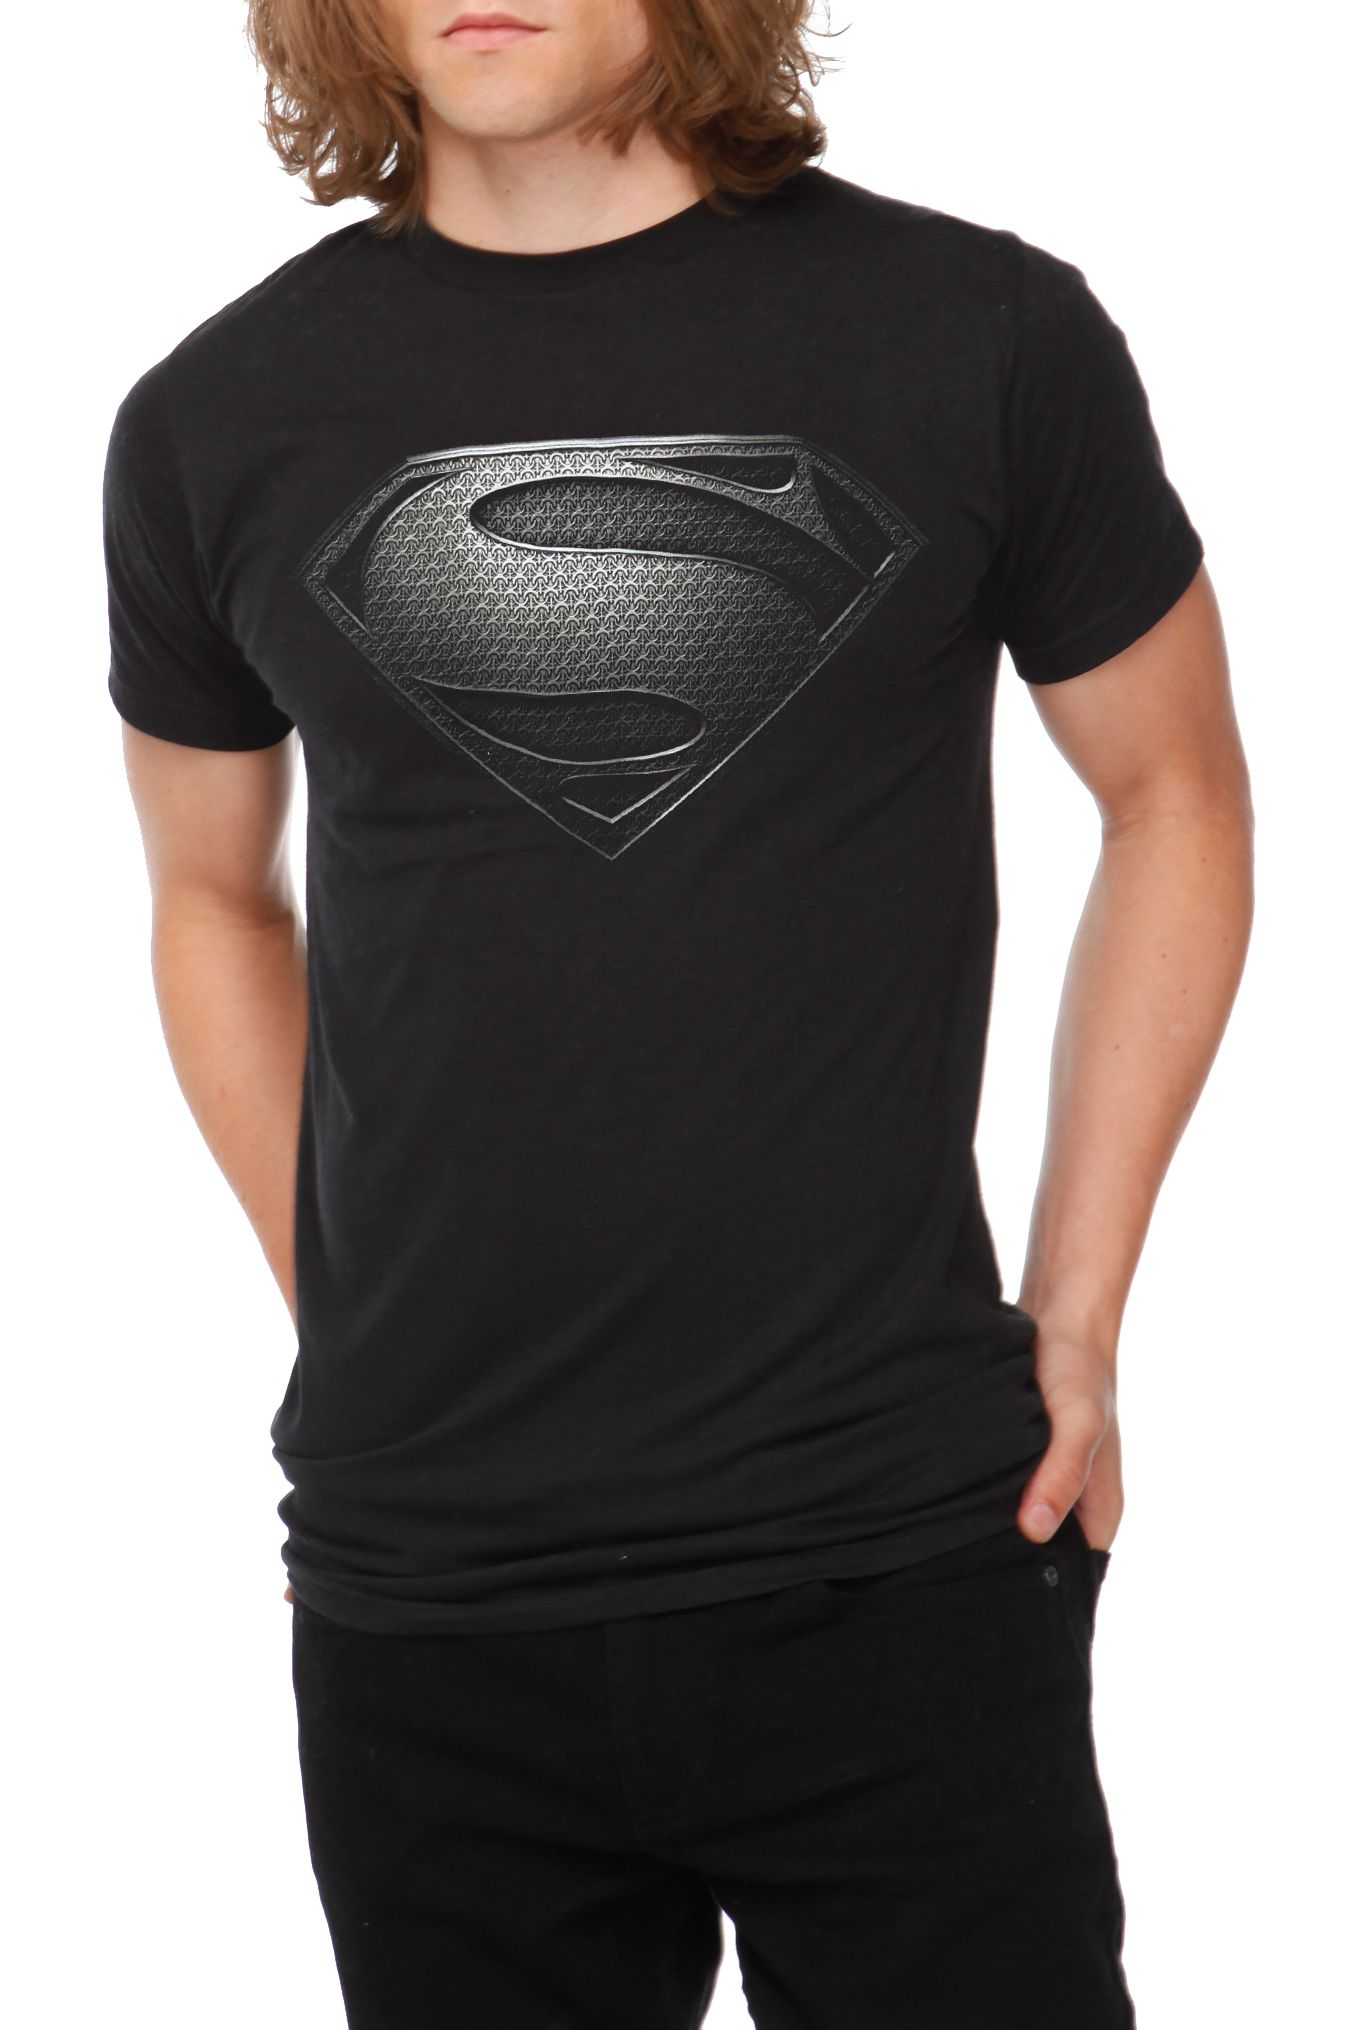 6a6f8d36 DC Comics Superman Man Of Steel Silver Logo T-Shirt $20.50 | My ...